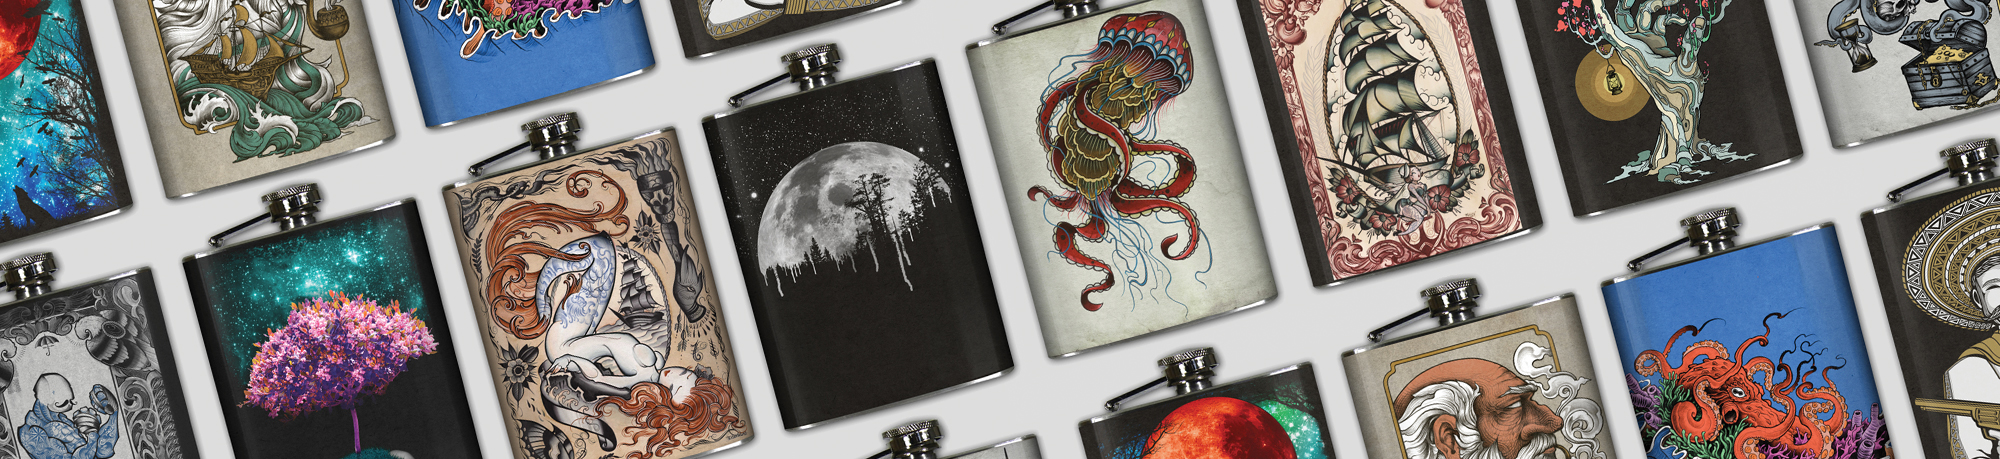 flasks-header.jpg